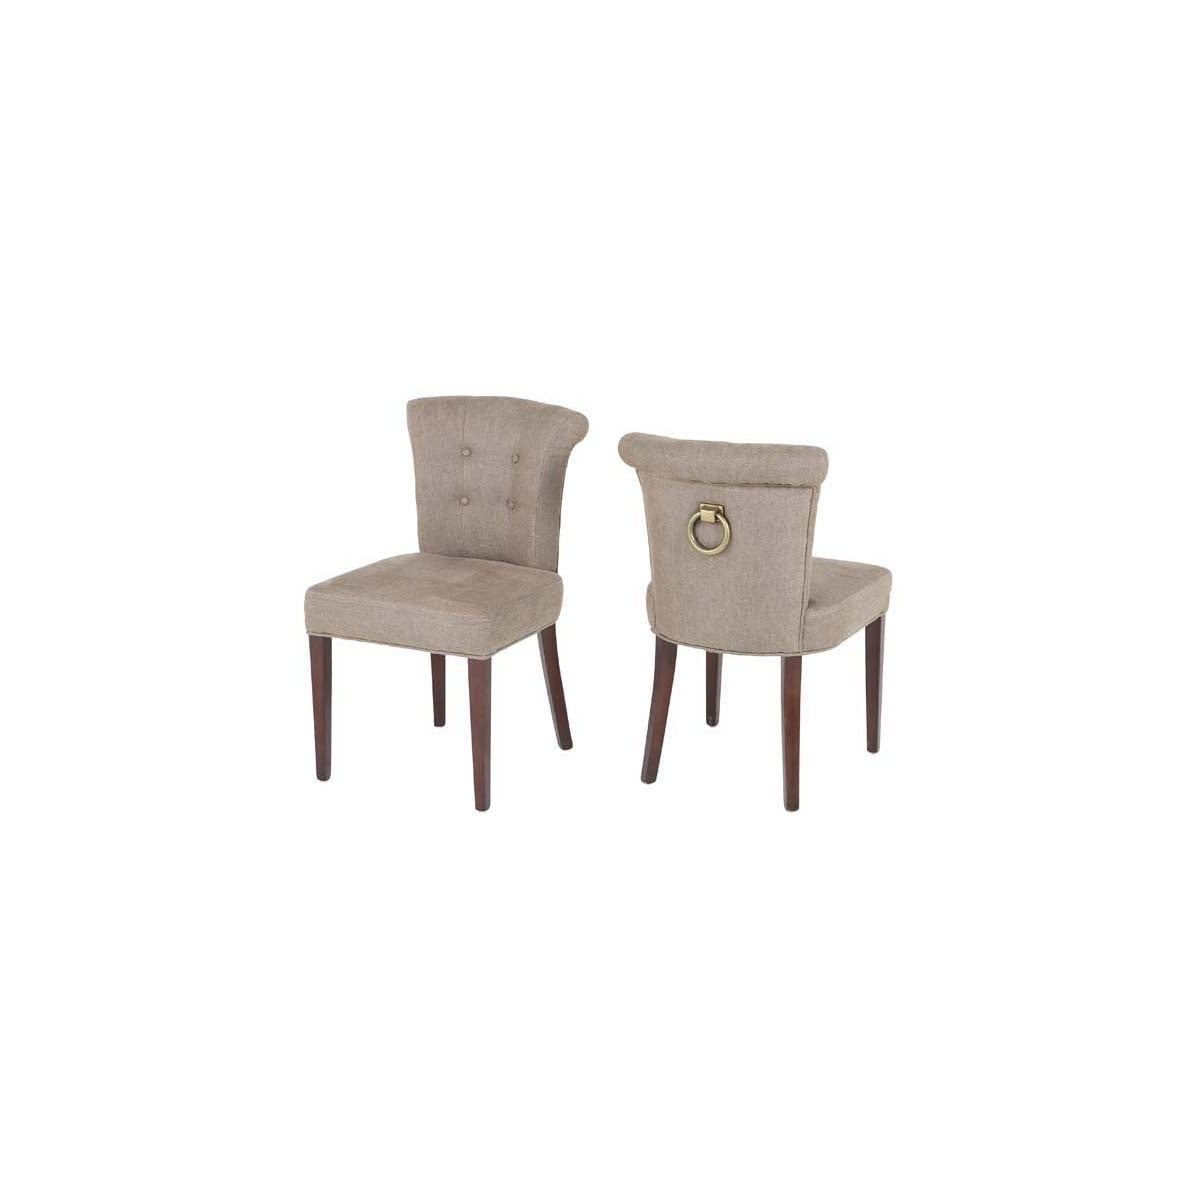 ring back dining chair stairway lifts eichholtz linen swanky interiors furniture with camel colour